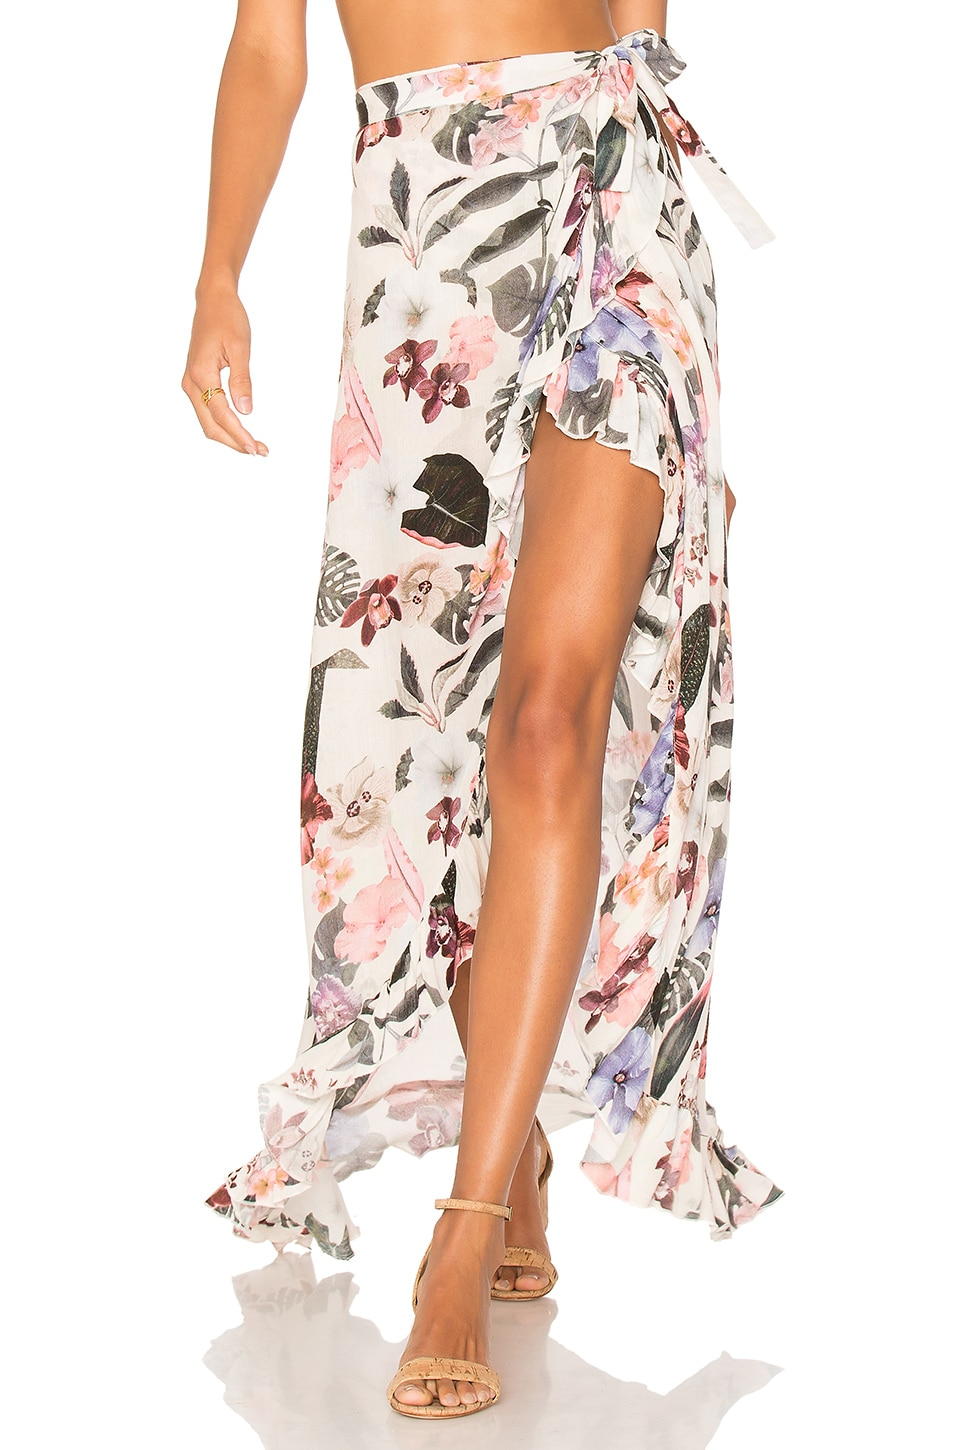 Lovers + Friends Waves for Days Wrap Skirt in Ivory Floral